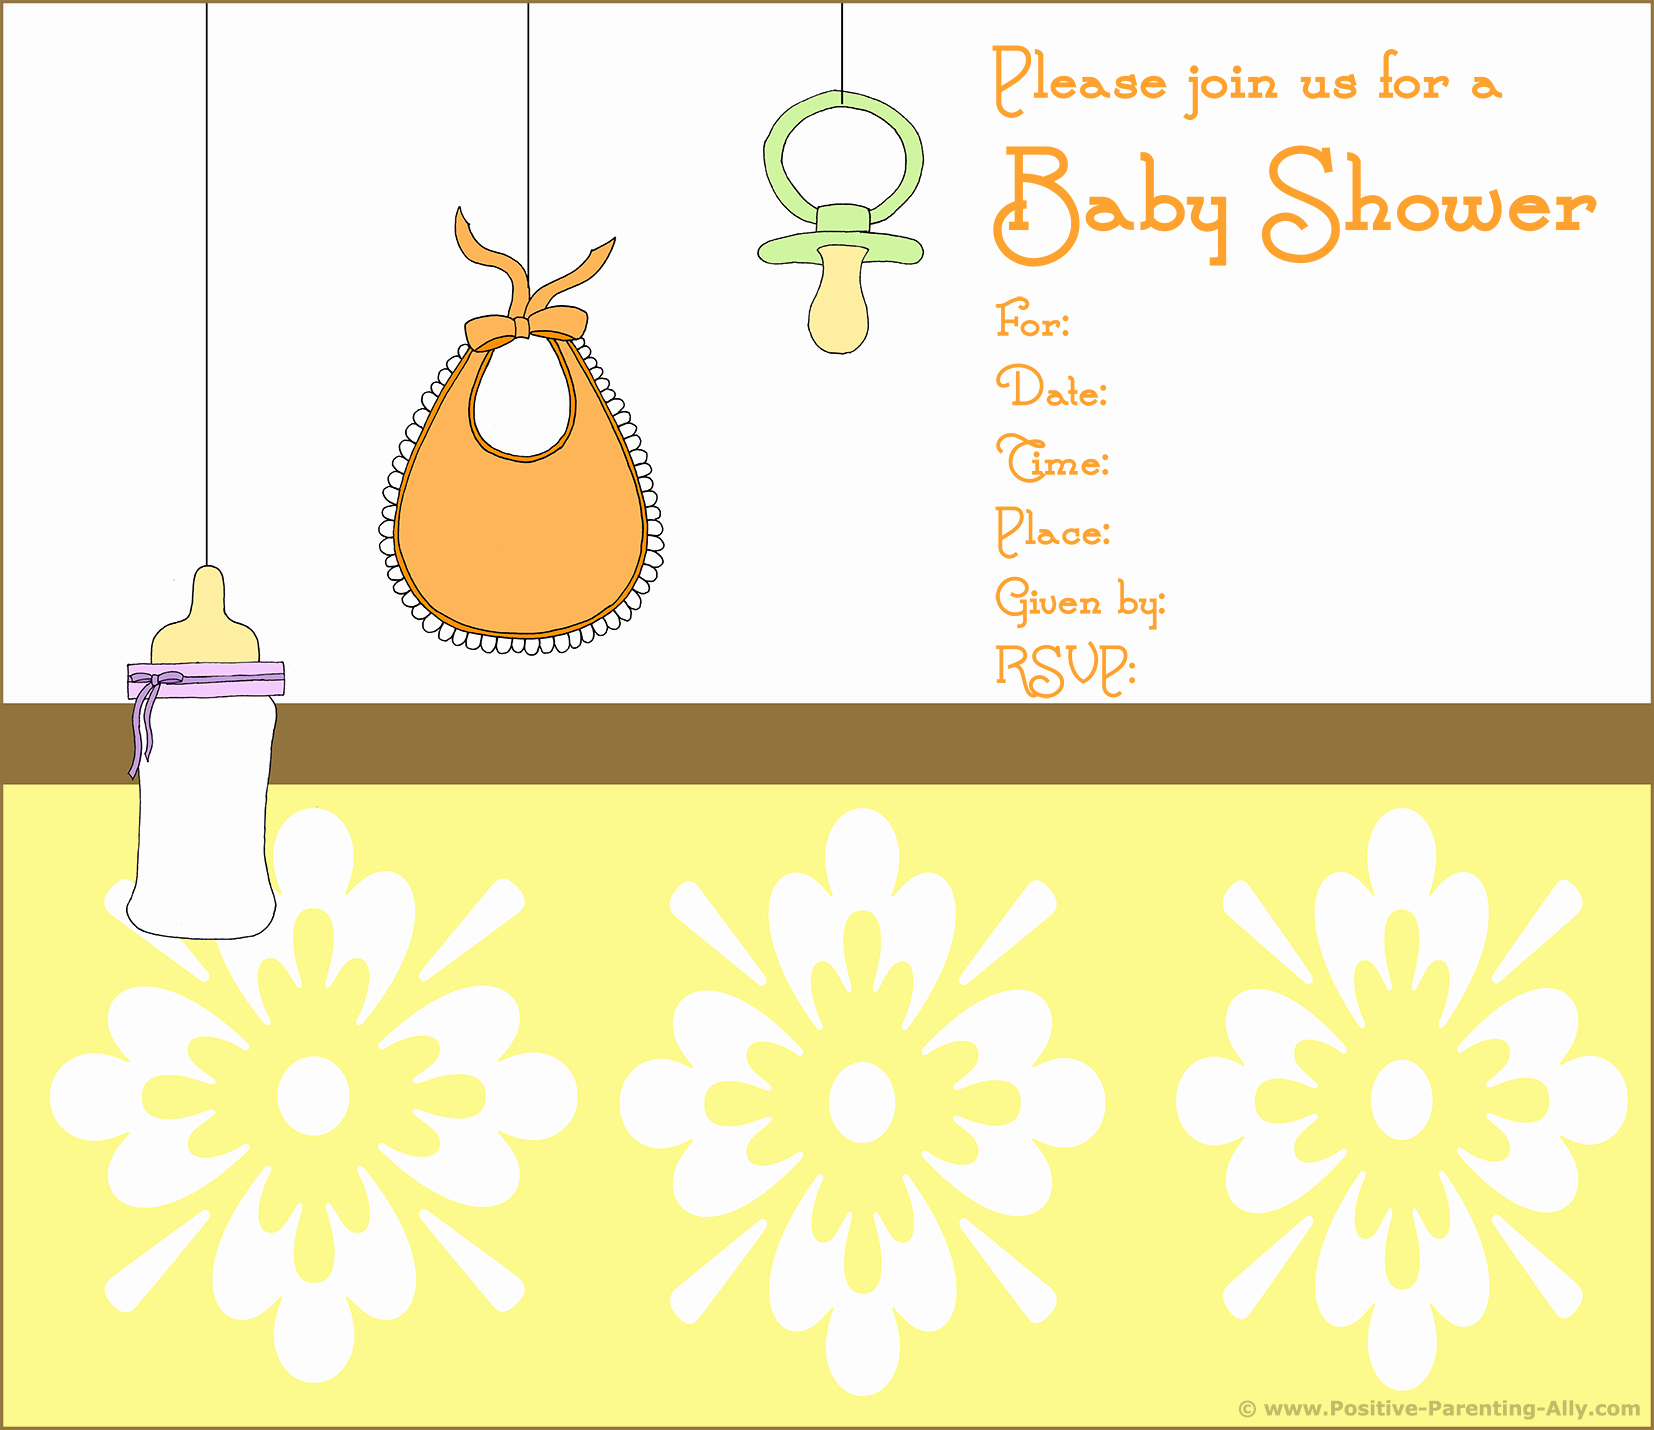 Baby Shower Template Free Lovely Free Printable Baby Shower Invitations In High Quality